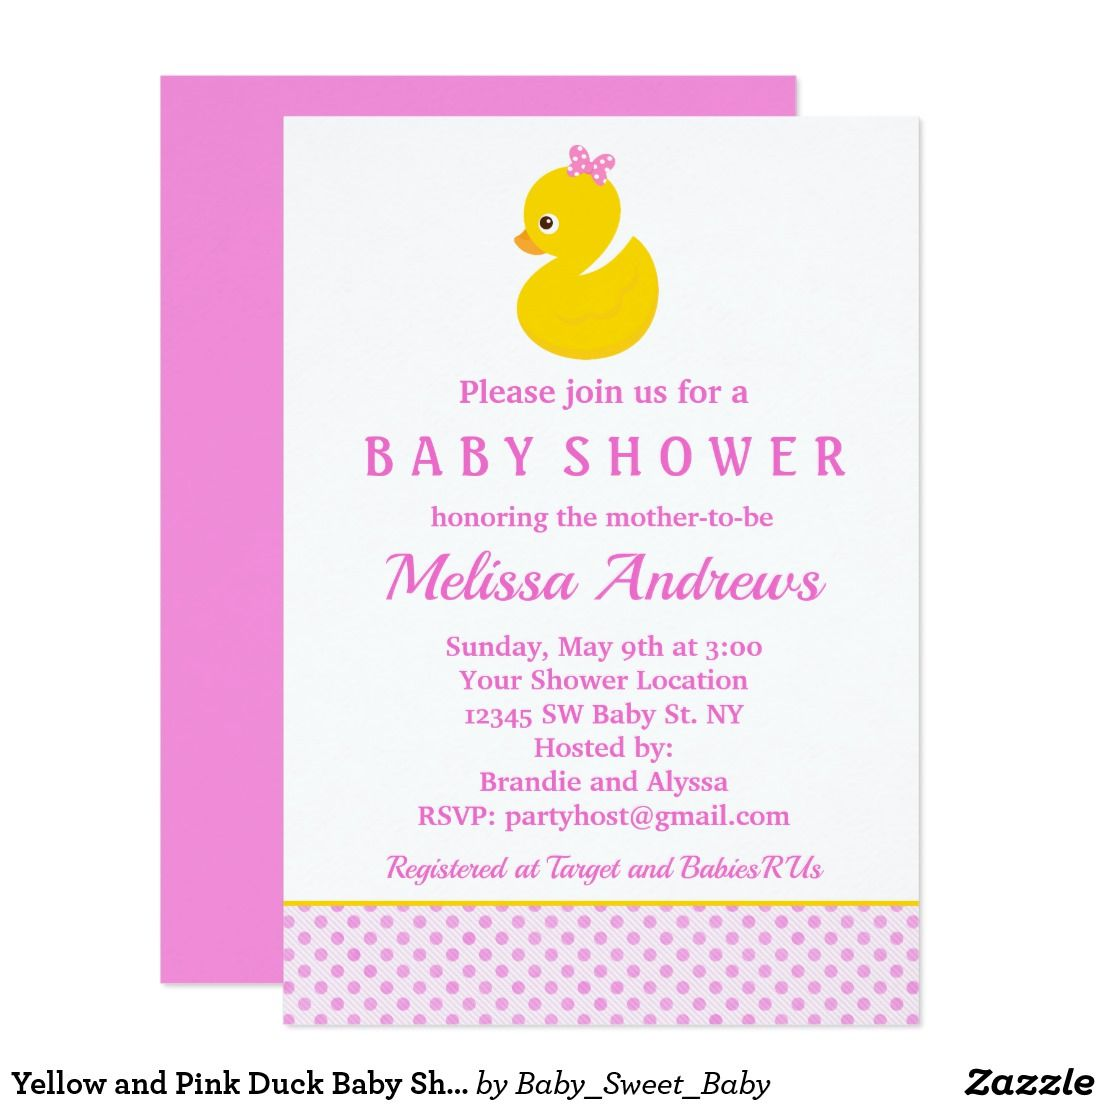 Yellow and Pink Duck Baby Shower Invitation Our custom baby shower ...